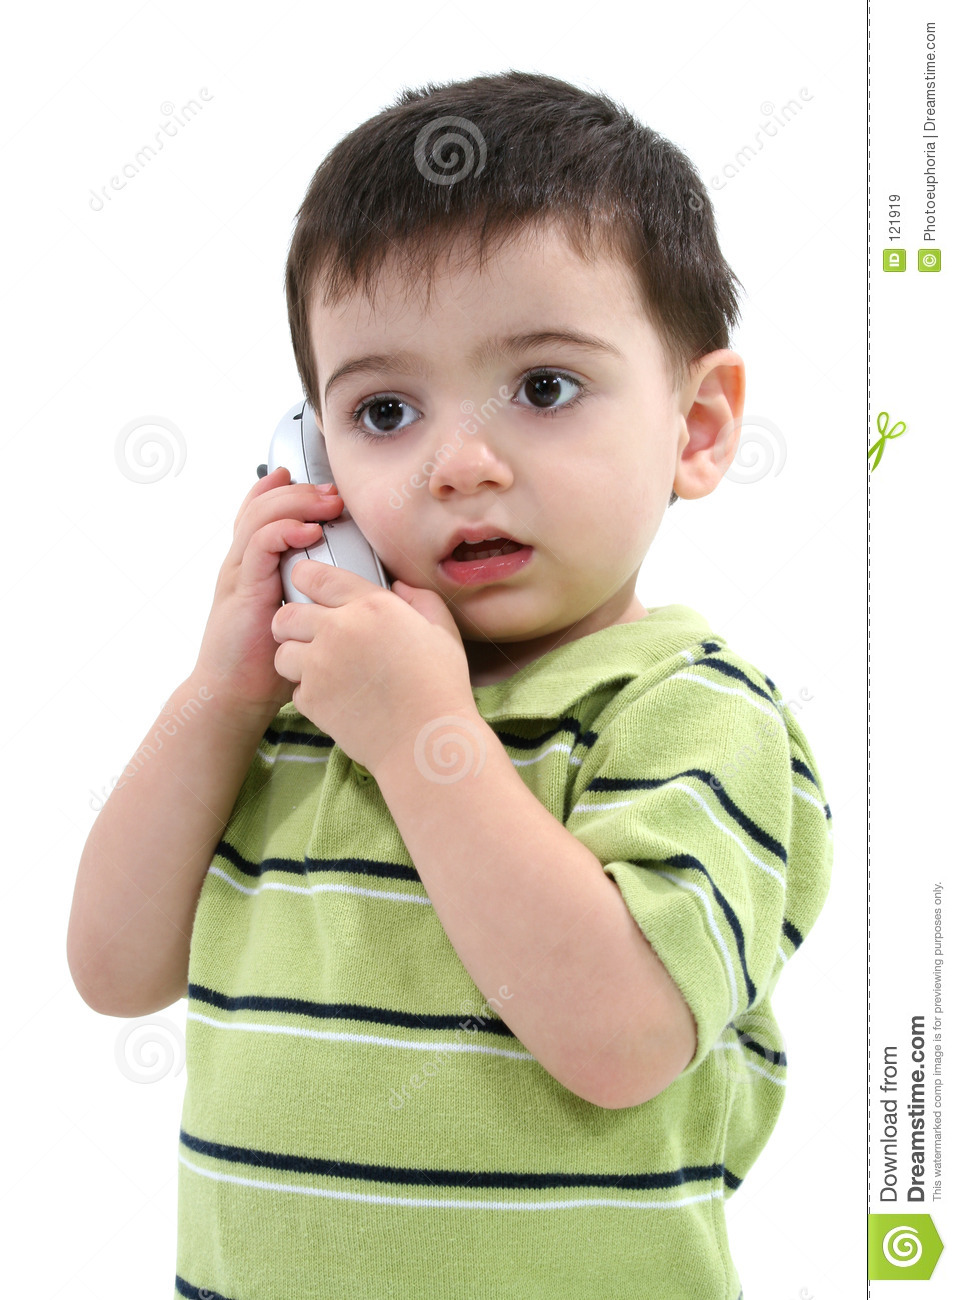 Adorable Toddler Boy Speaking On A Cordless Phone Over